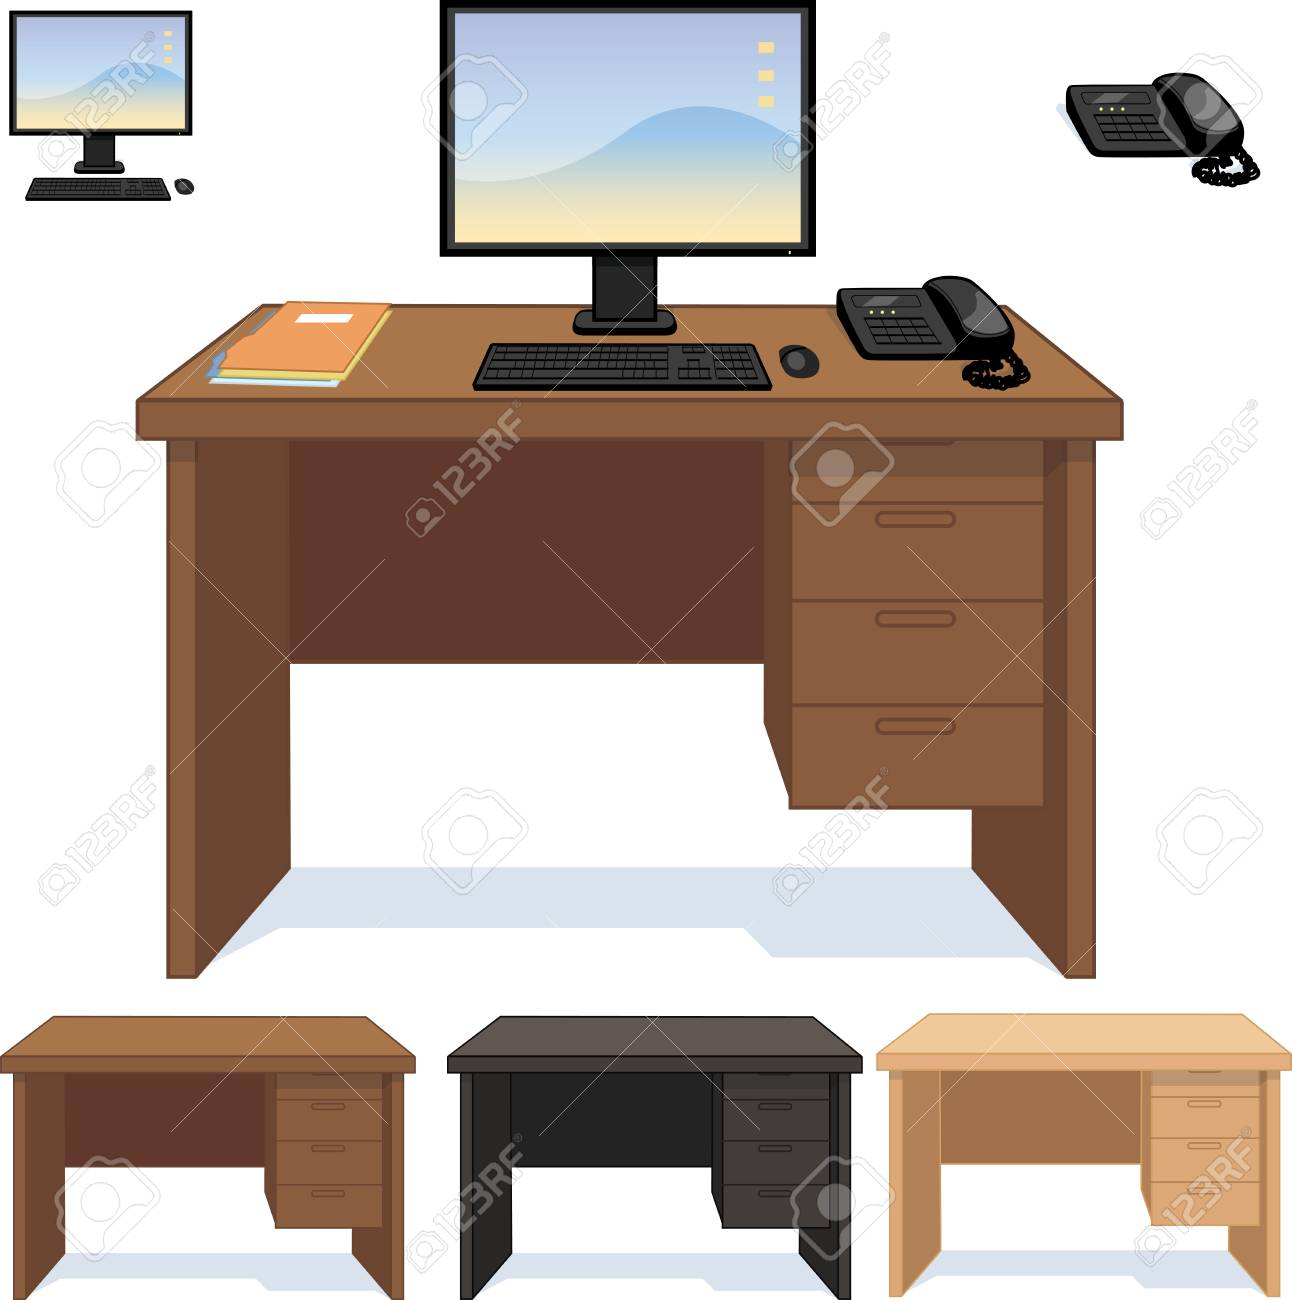 Magnificent Wood Desk Three Color Option With Computer Telephone And Papers Download Free Architecture Designs Scobabritishbridgeorg